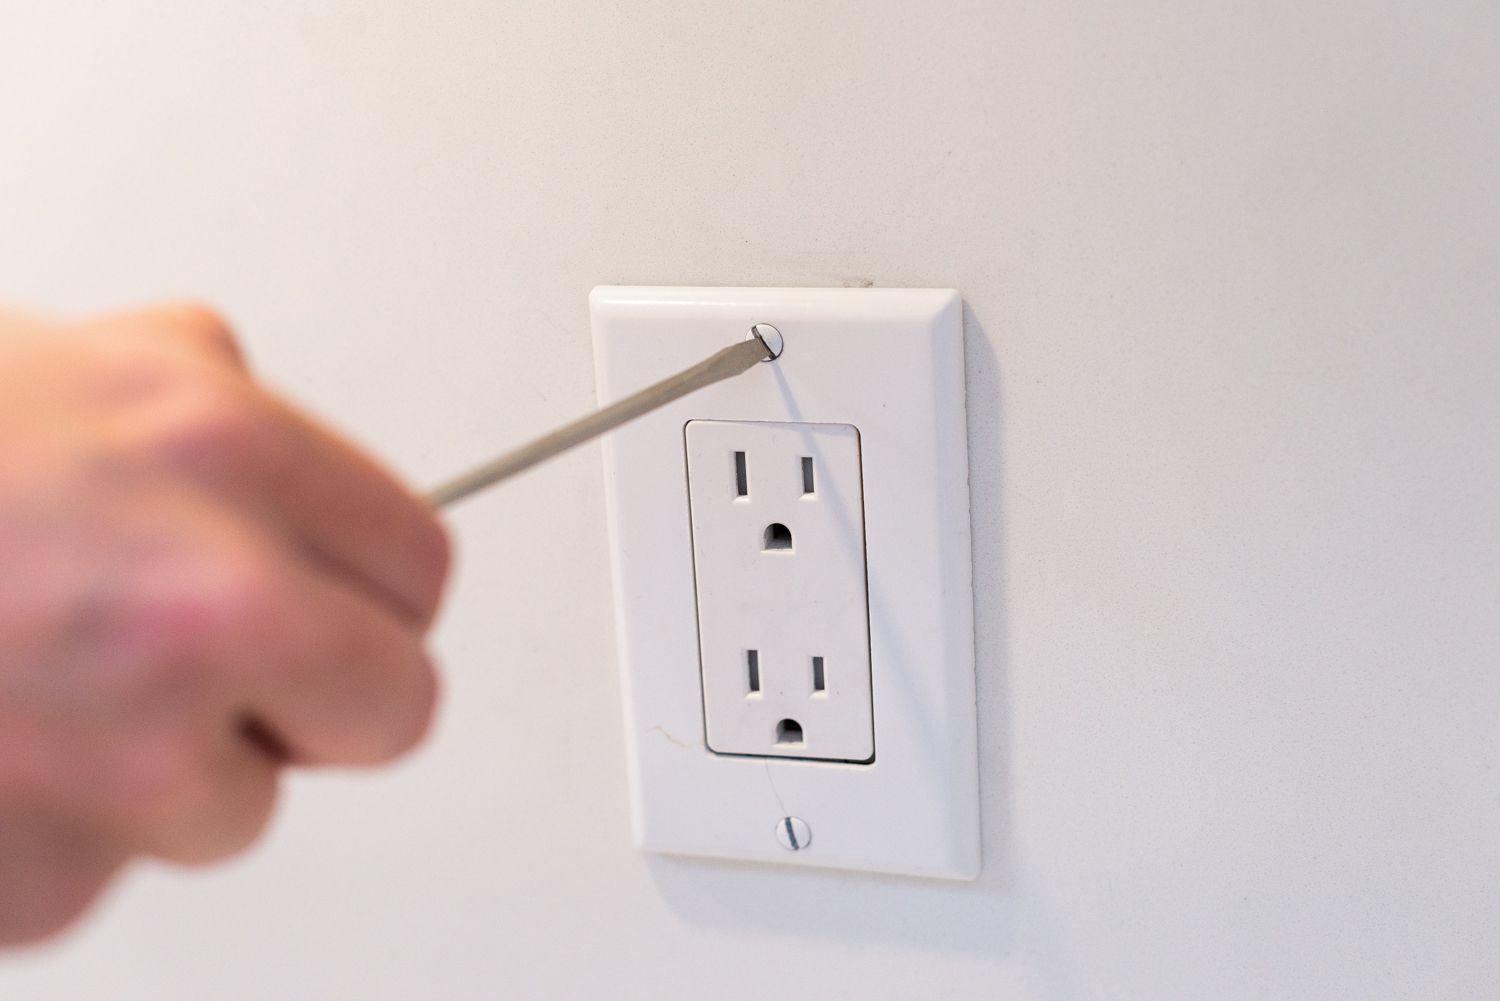 How To Wire And Install An Electrical Outlet Wiring Up Outdoor Socket